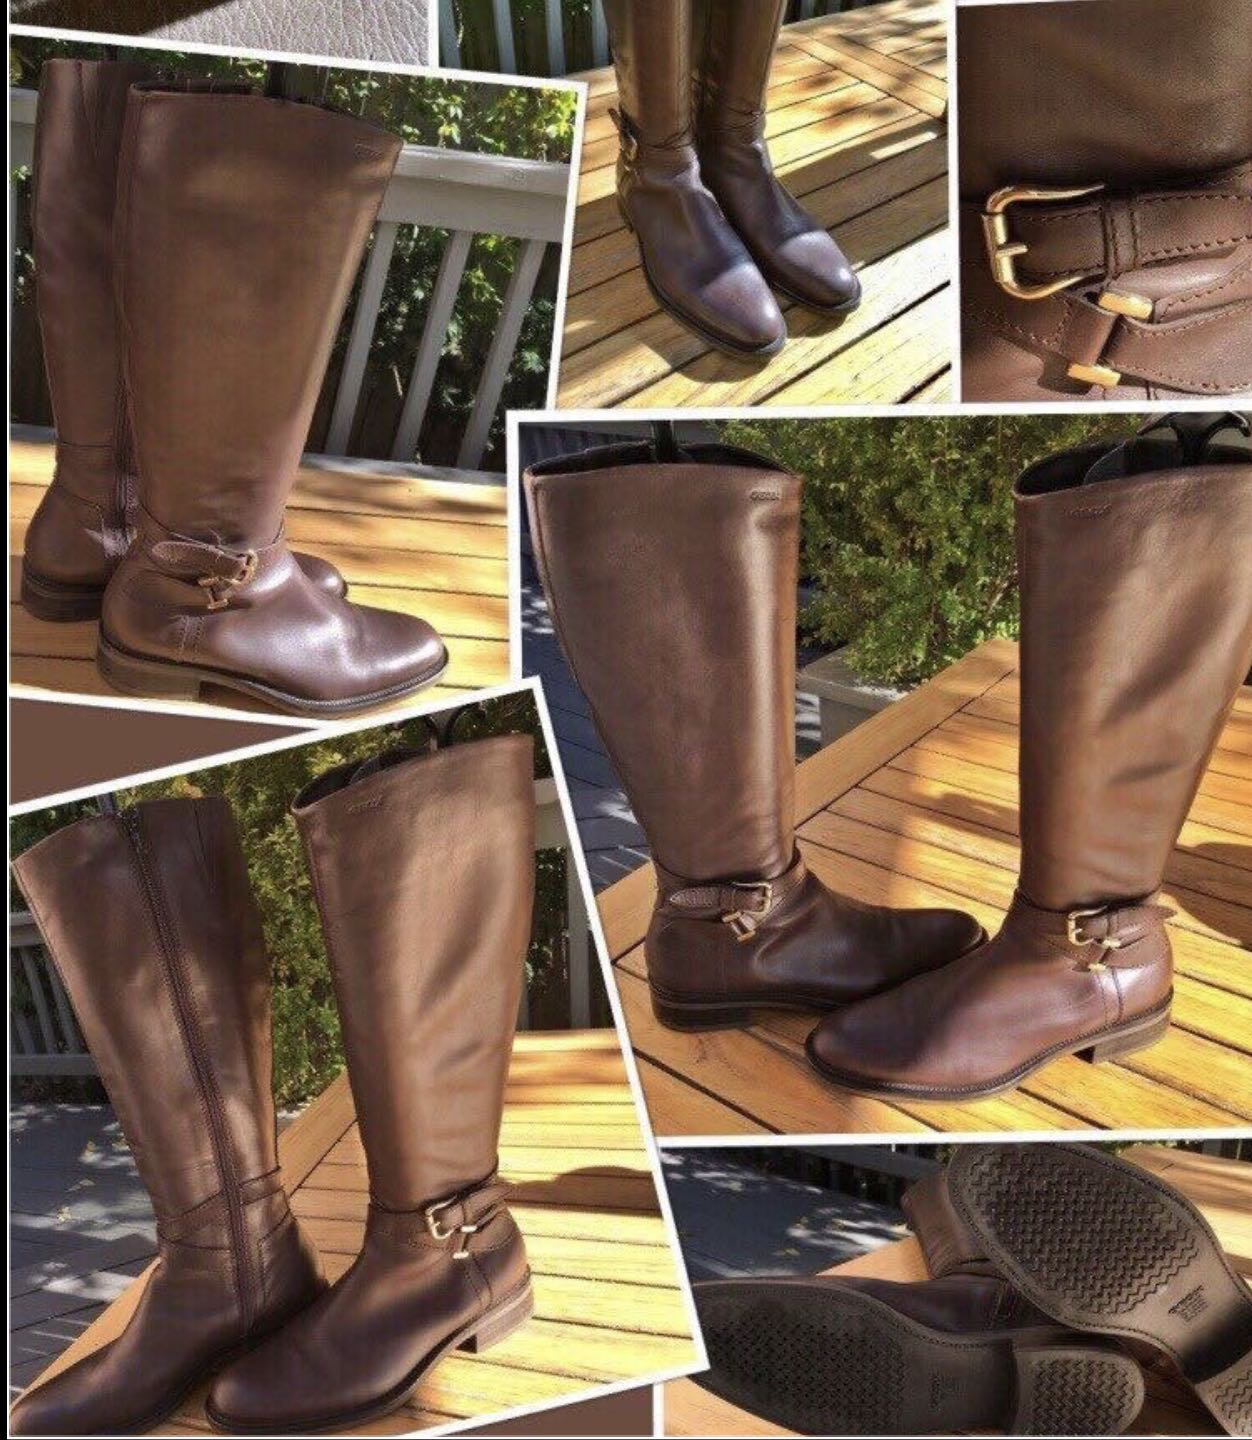 """""""GEOX""""LIKE NEW Stunning all leather riding boots in dark chocolate brown with pale gold buckles in size 37(fits 7-71/2)(fits a narrow foot)"""